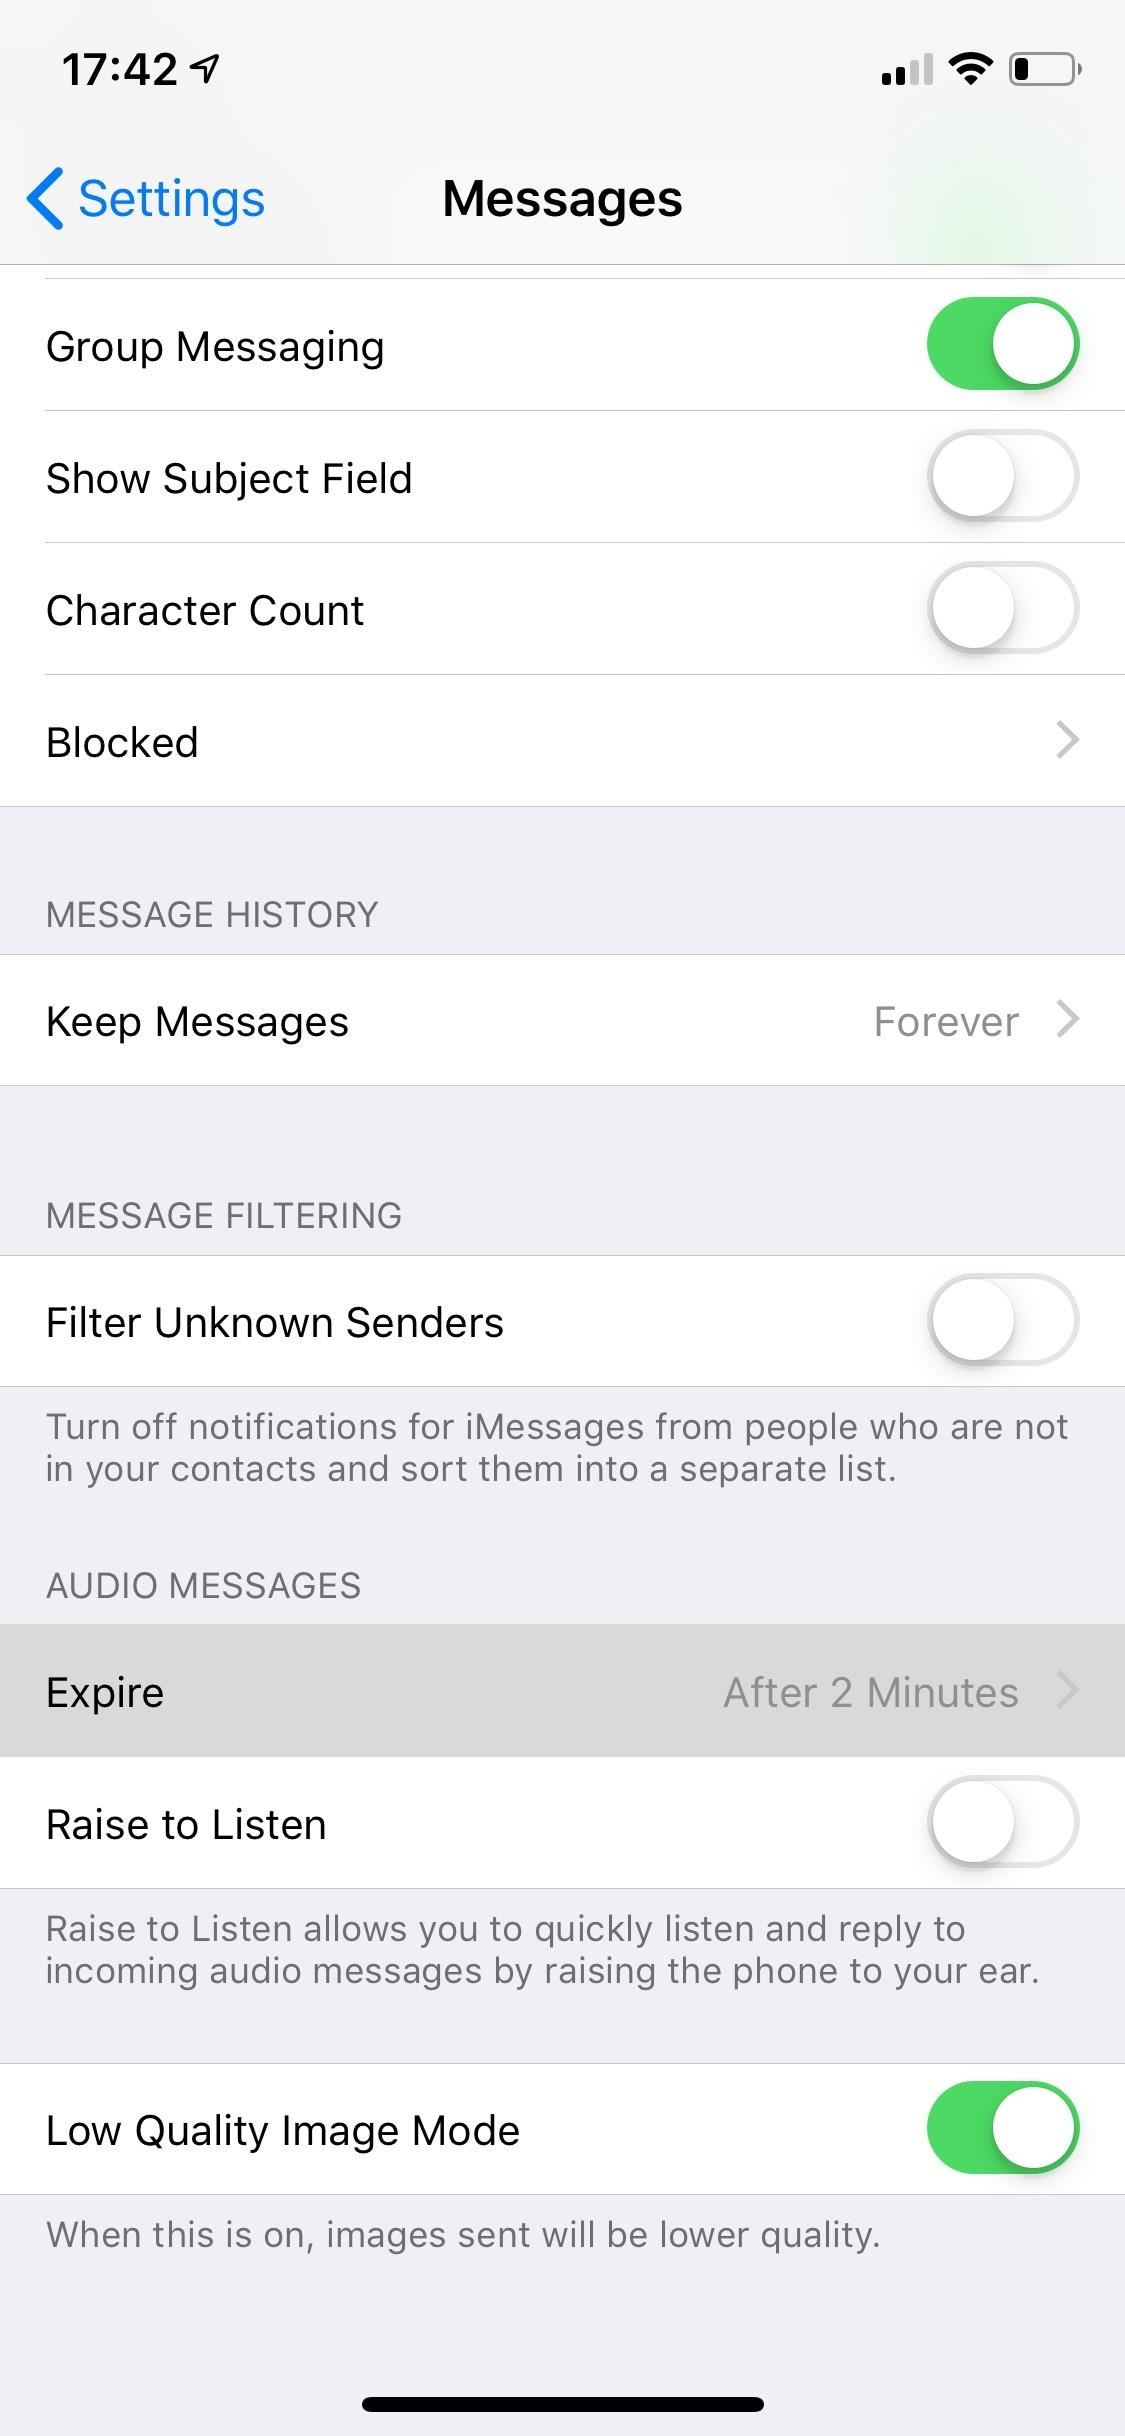 How to Stop Audio Messages from Self-Destructing in